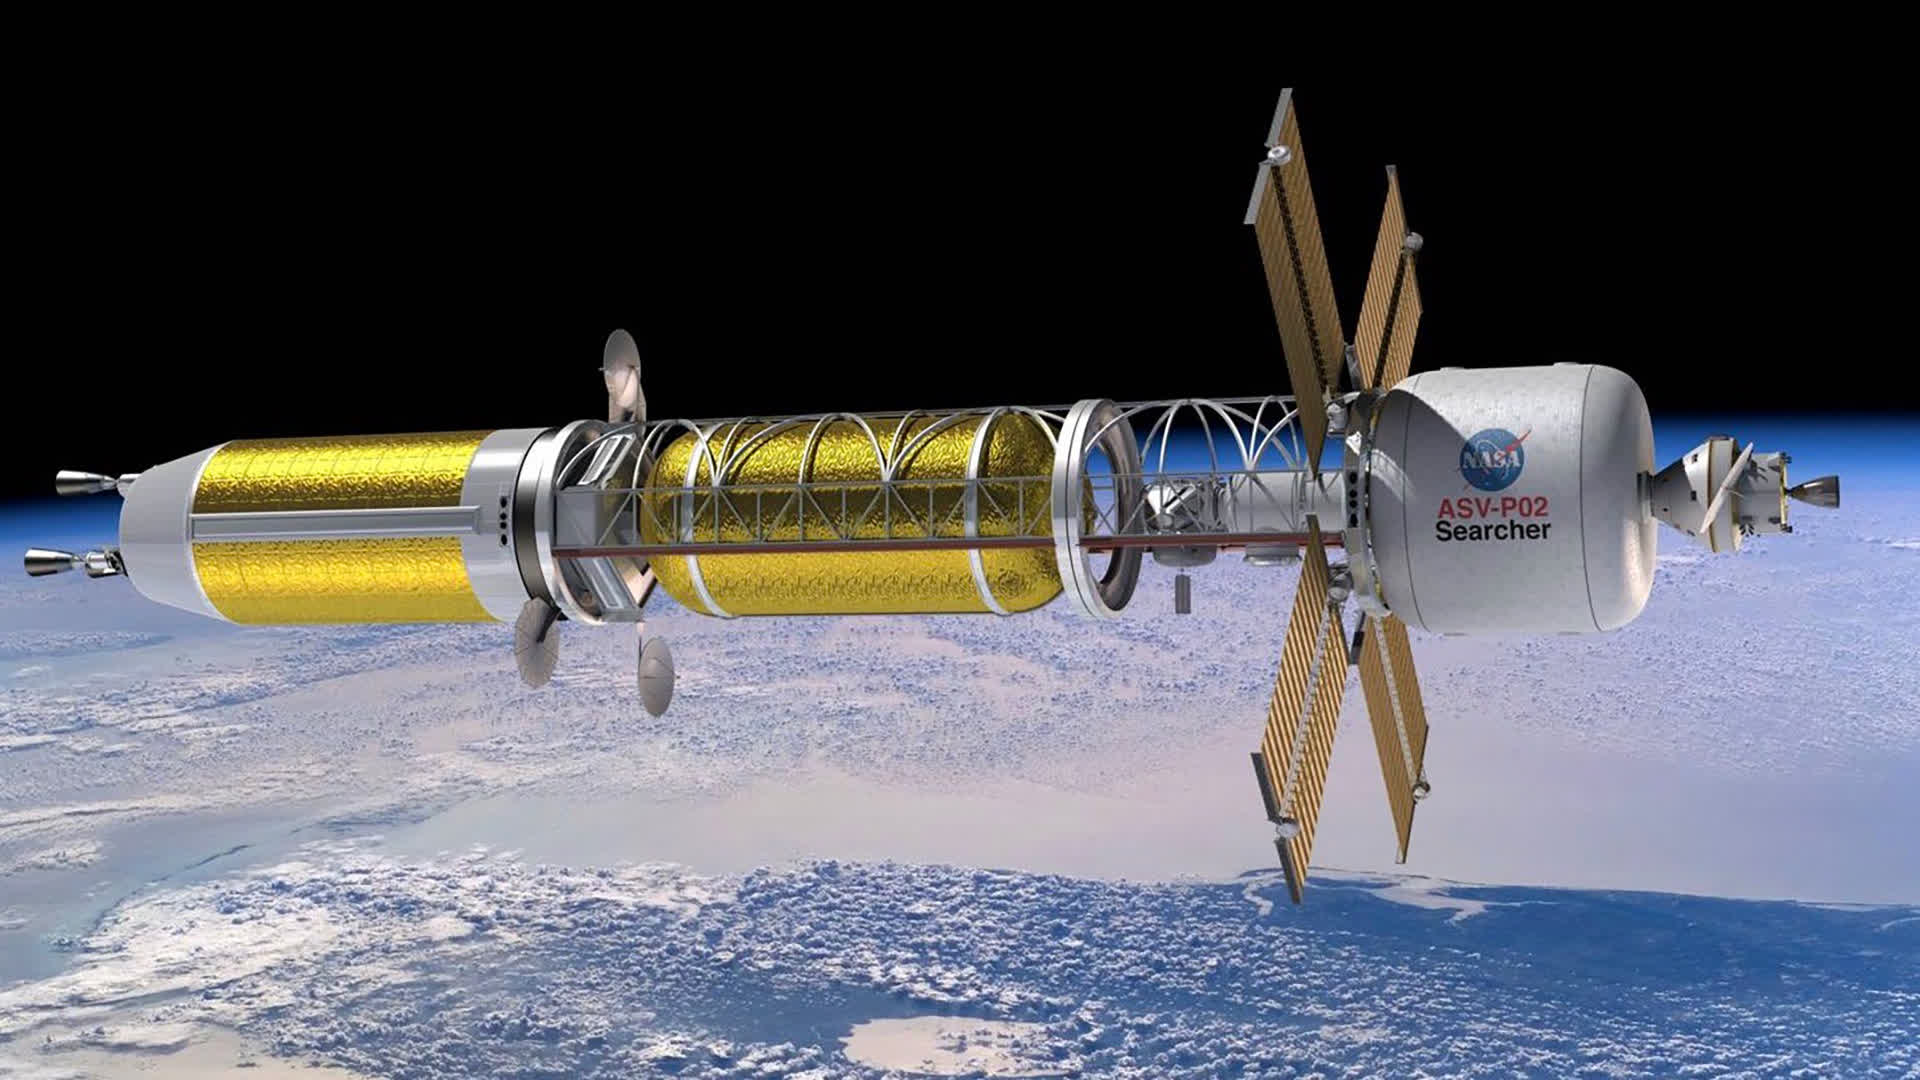 Department of Defense interested in nuclear propulsion system for small spacecraft